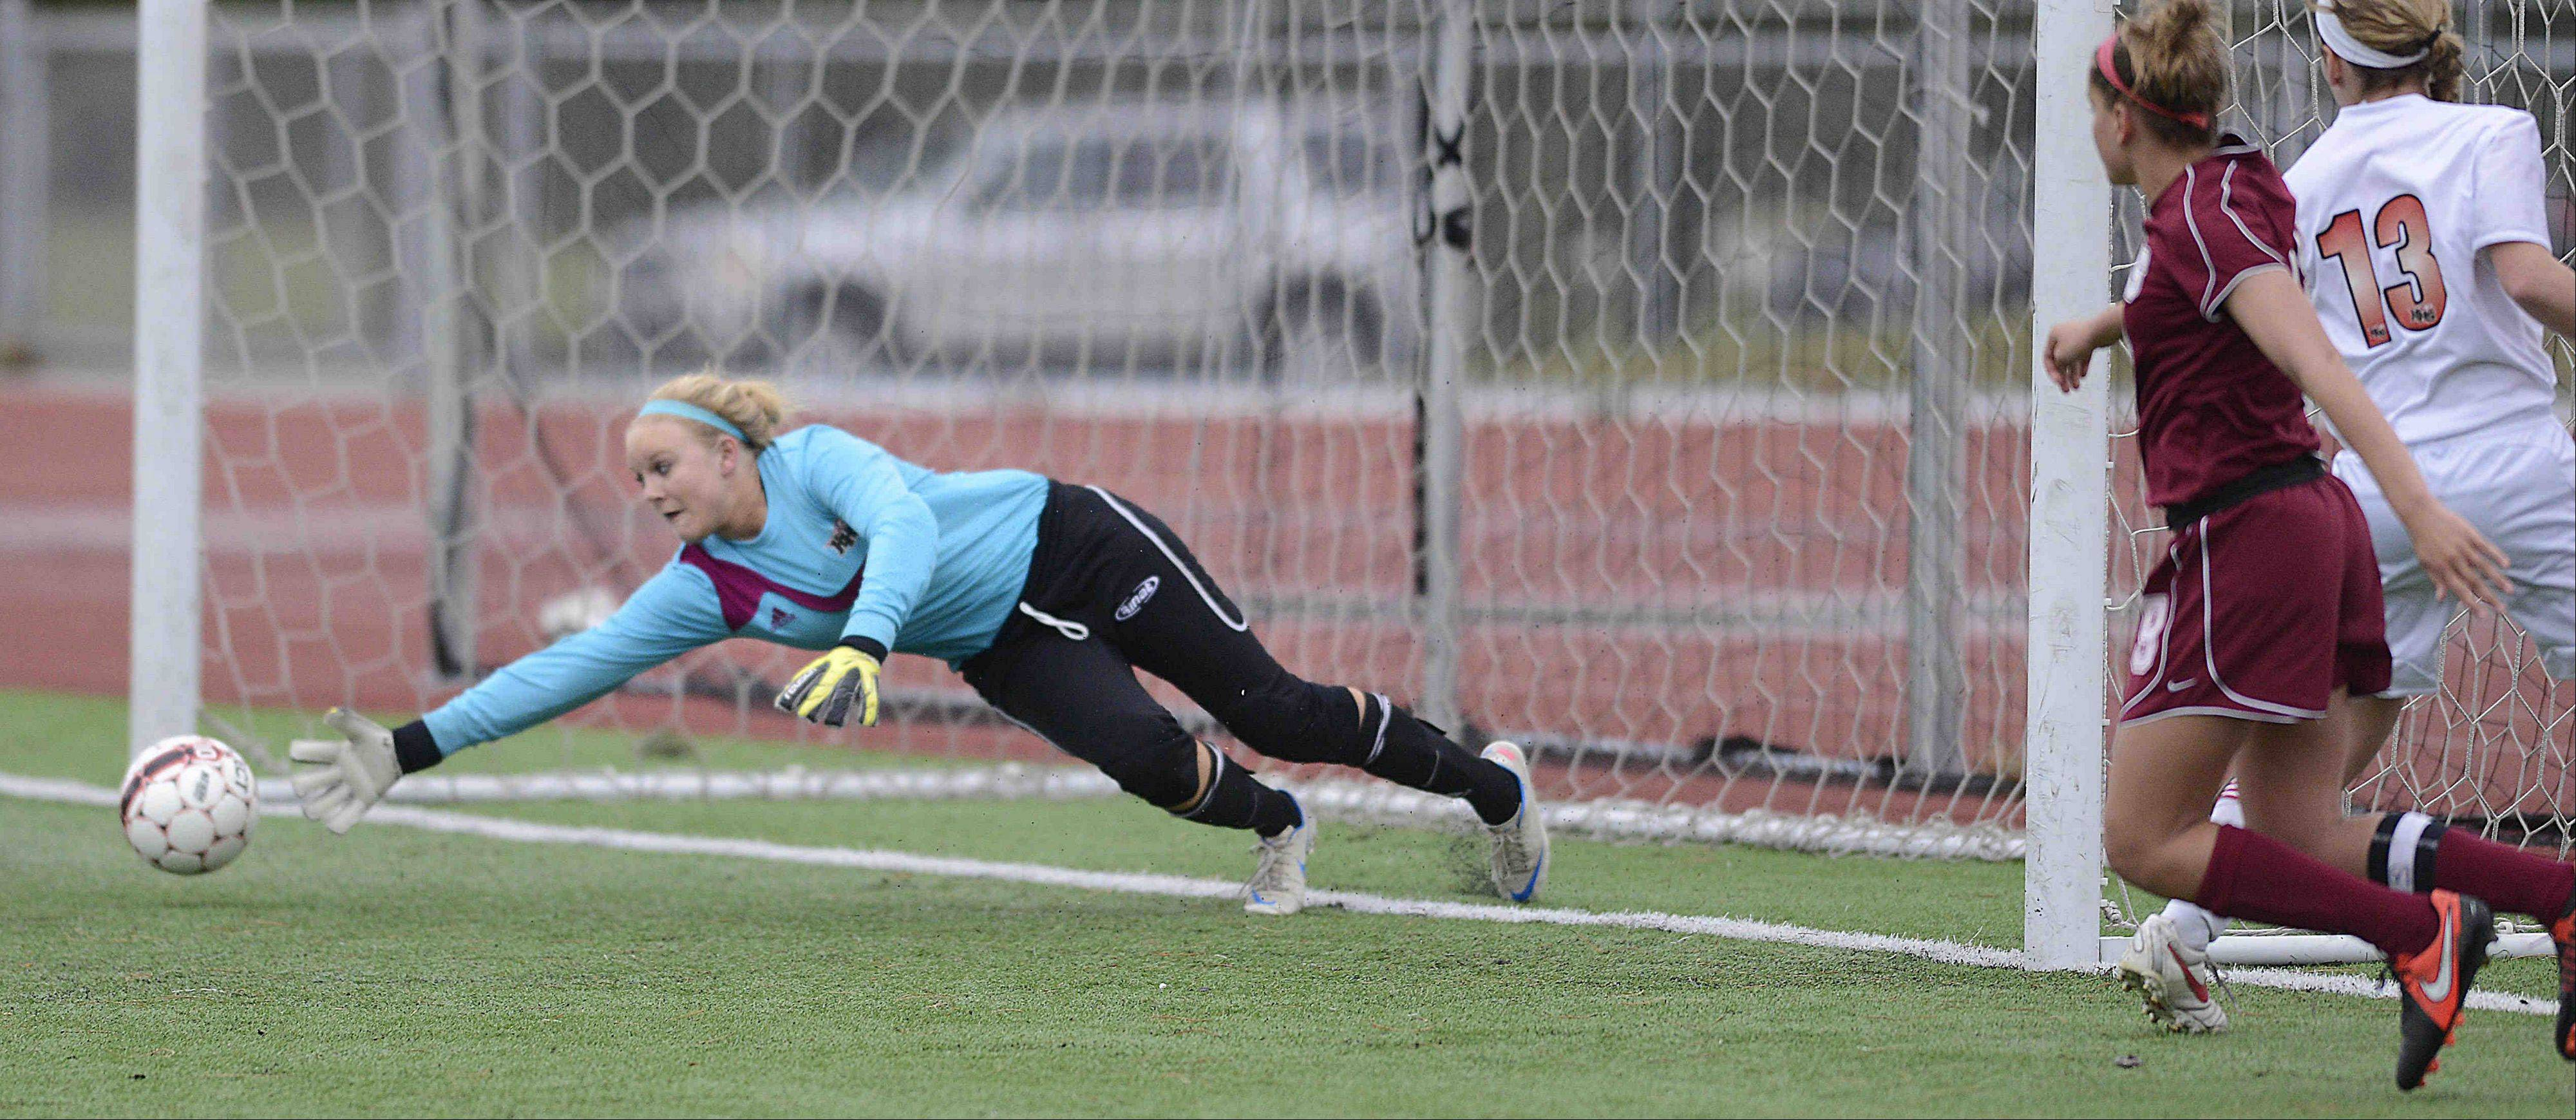 Huntley goalkeeper Jessica Galason dives for a shot that goes wide from Plainfield North�s Shayna Dheel Thursday in the Pepsi Showdown quarterfinal game at Northern Illinois University in DeKalb.